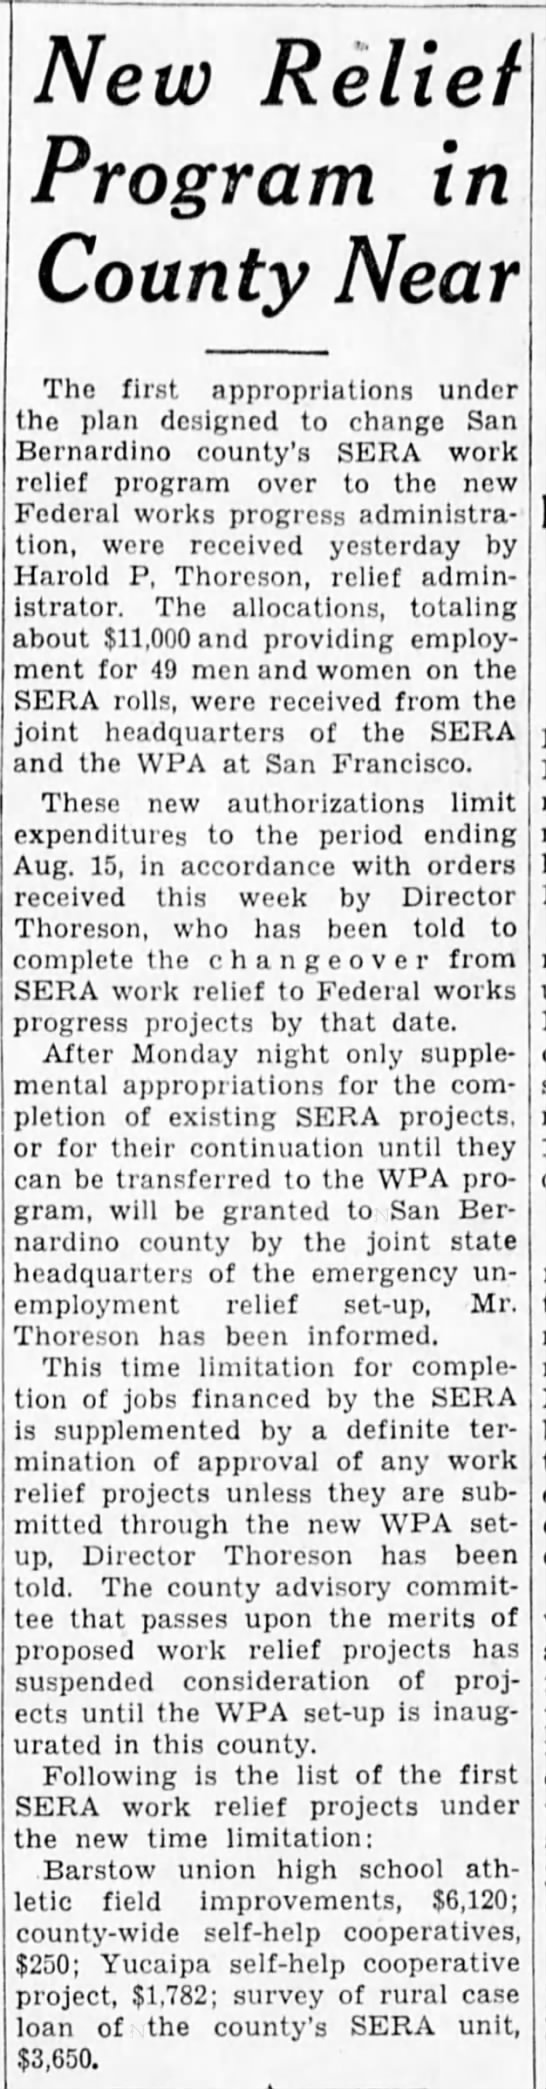 7-13-1935 New Relief Program in County Near -